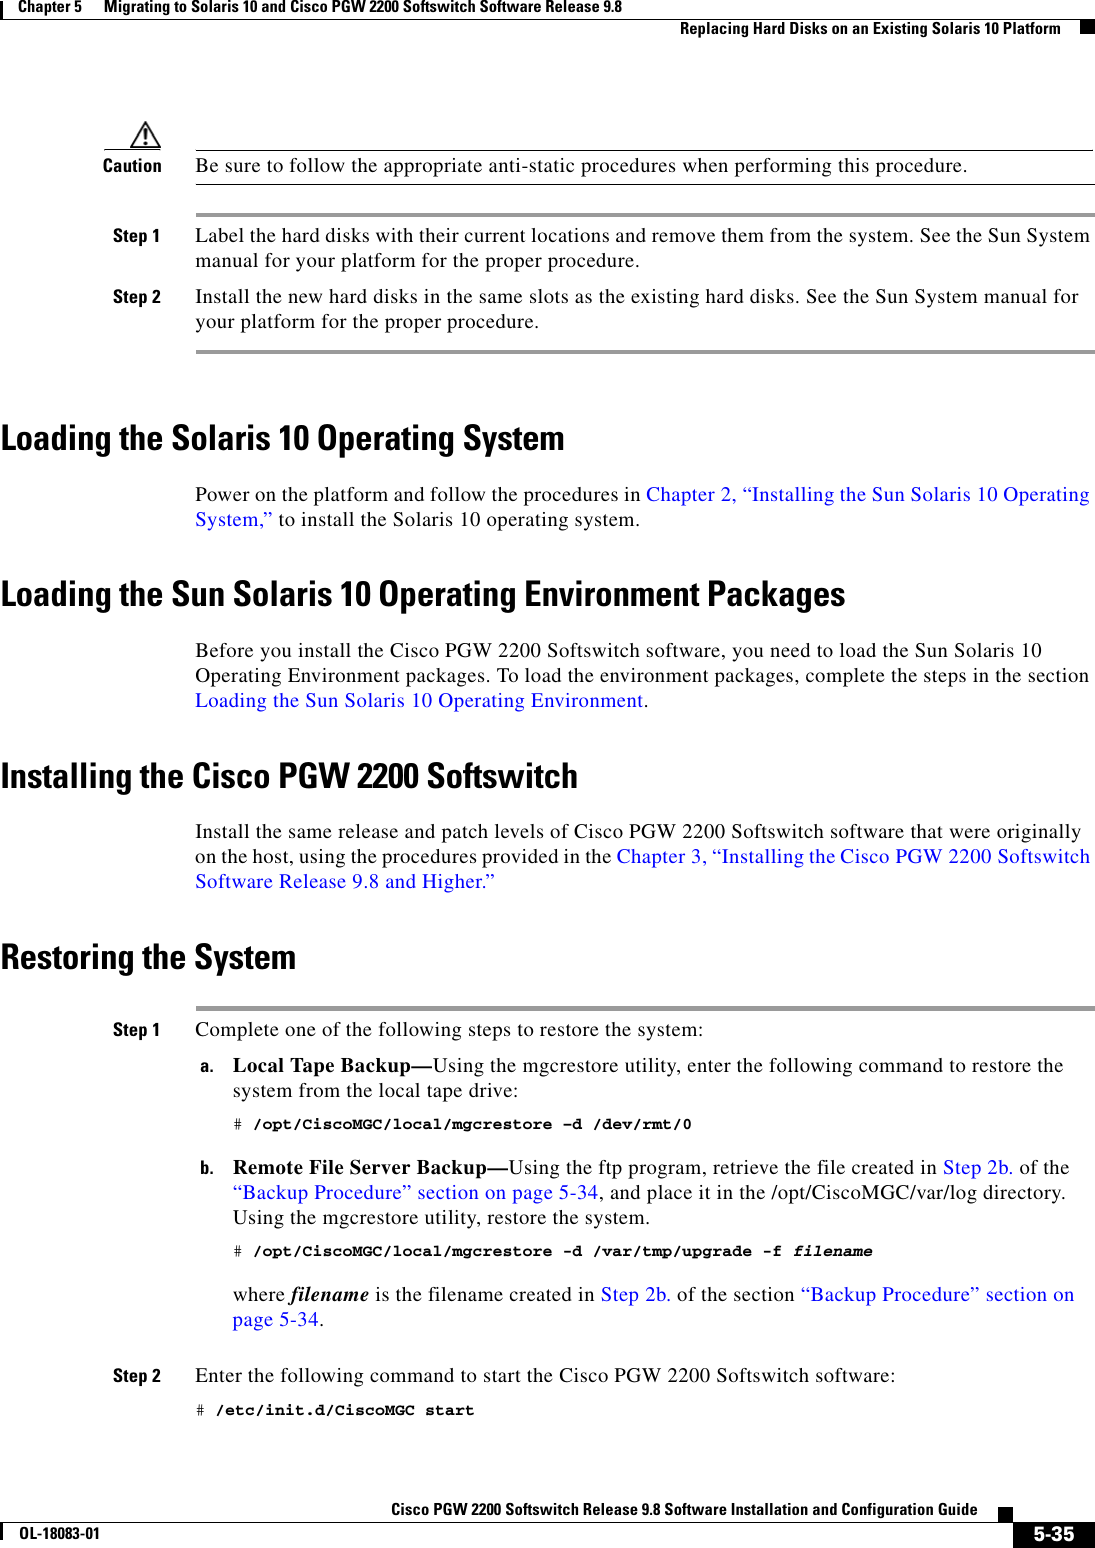 Cisco Systems Pgw 2200 Installation And Configuration Guide